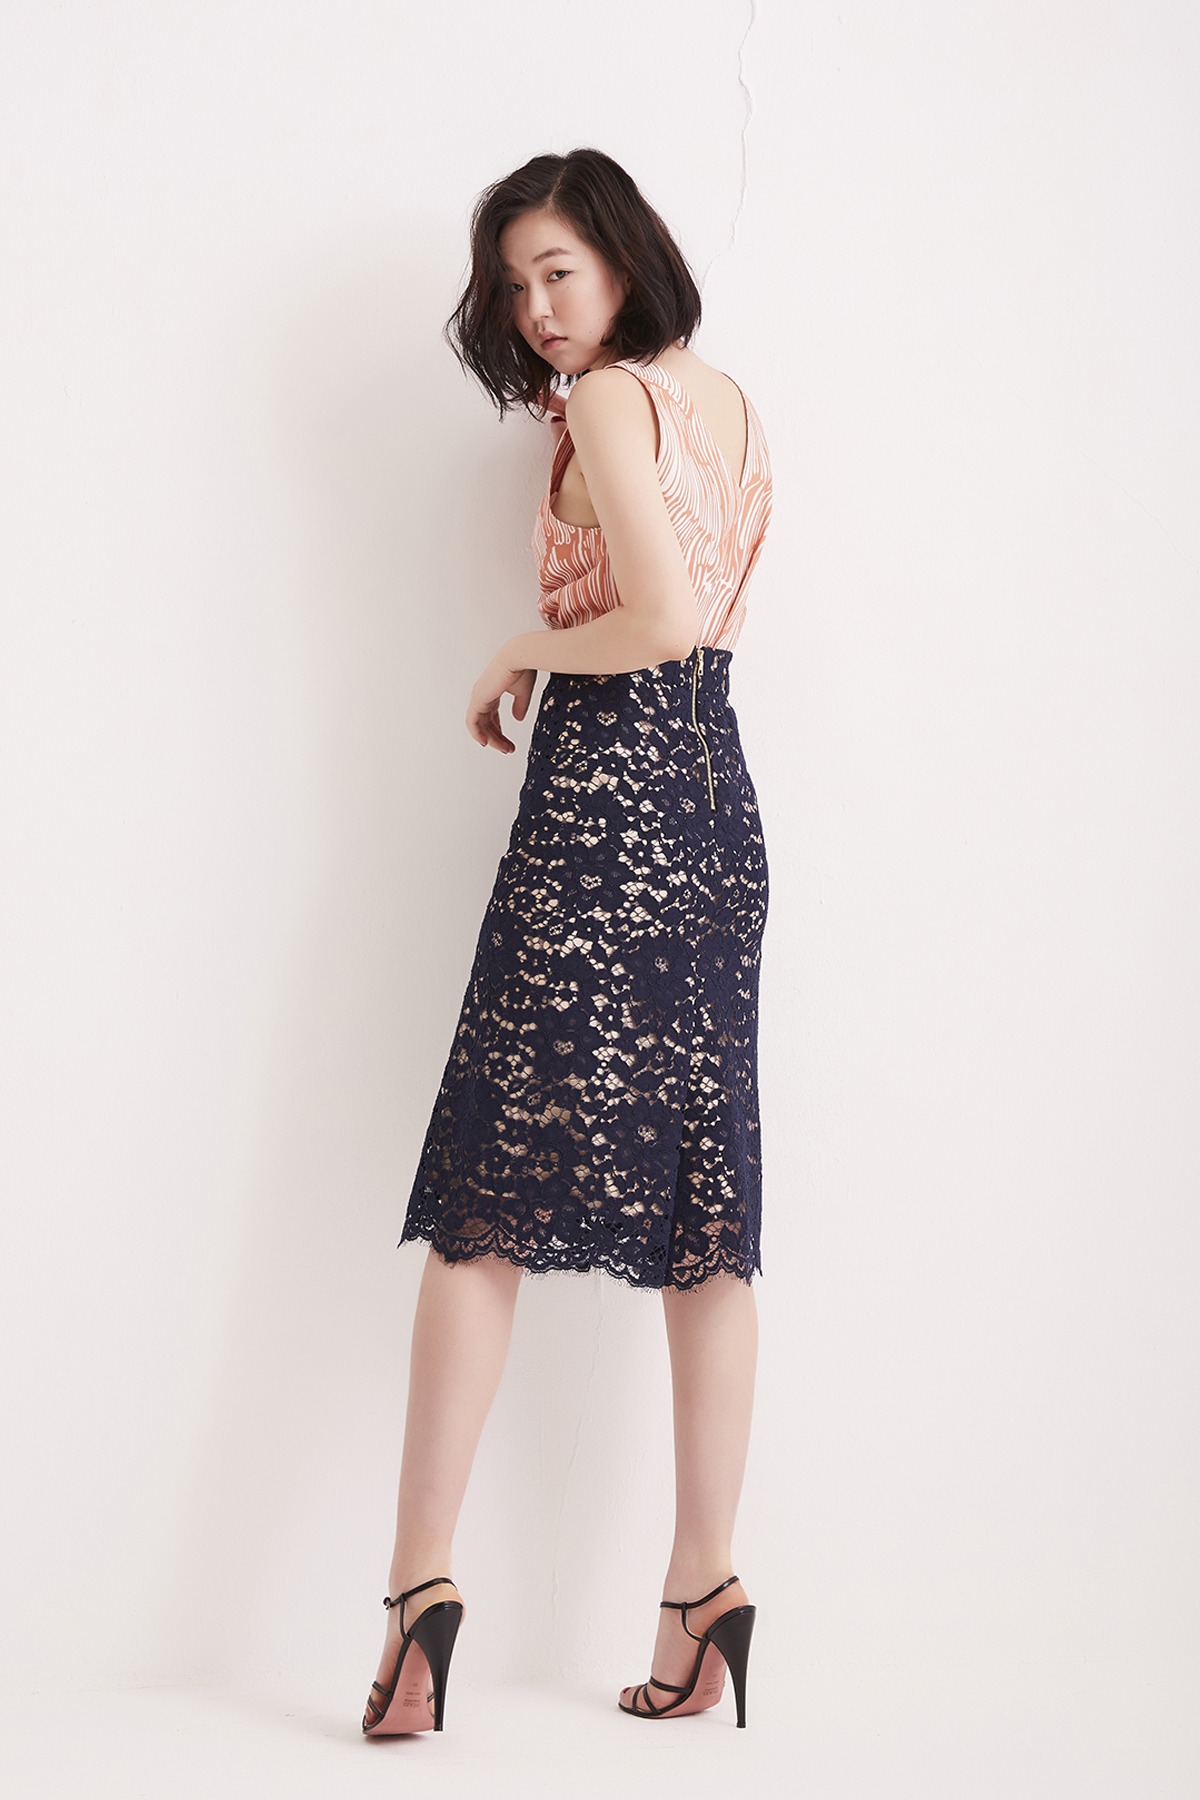 [50% OFF] Blue Berry Flared Skirt